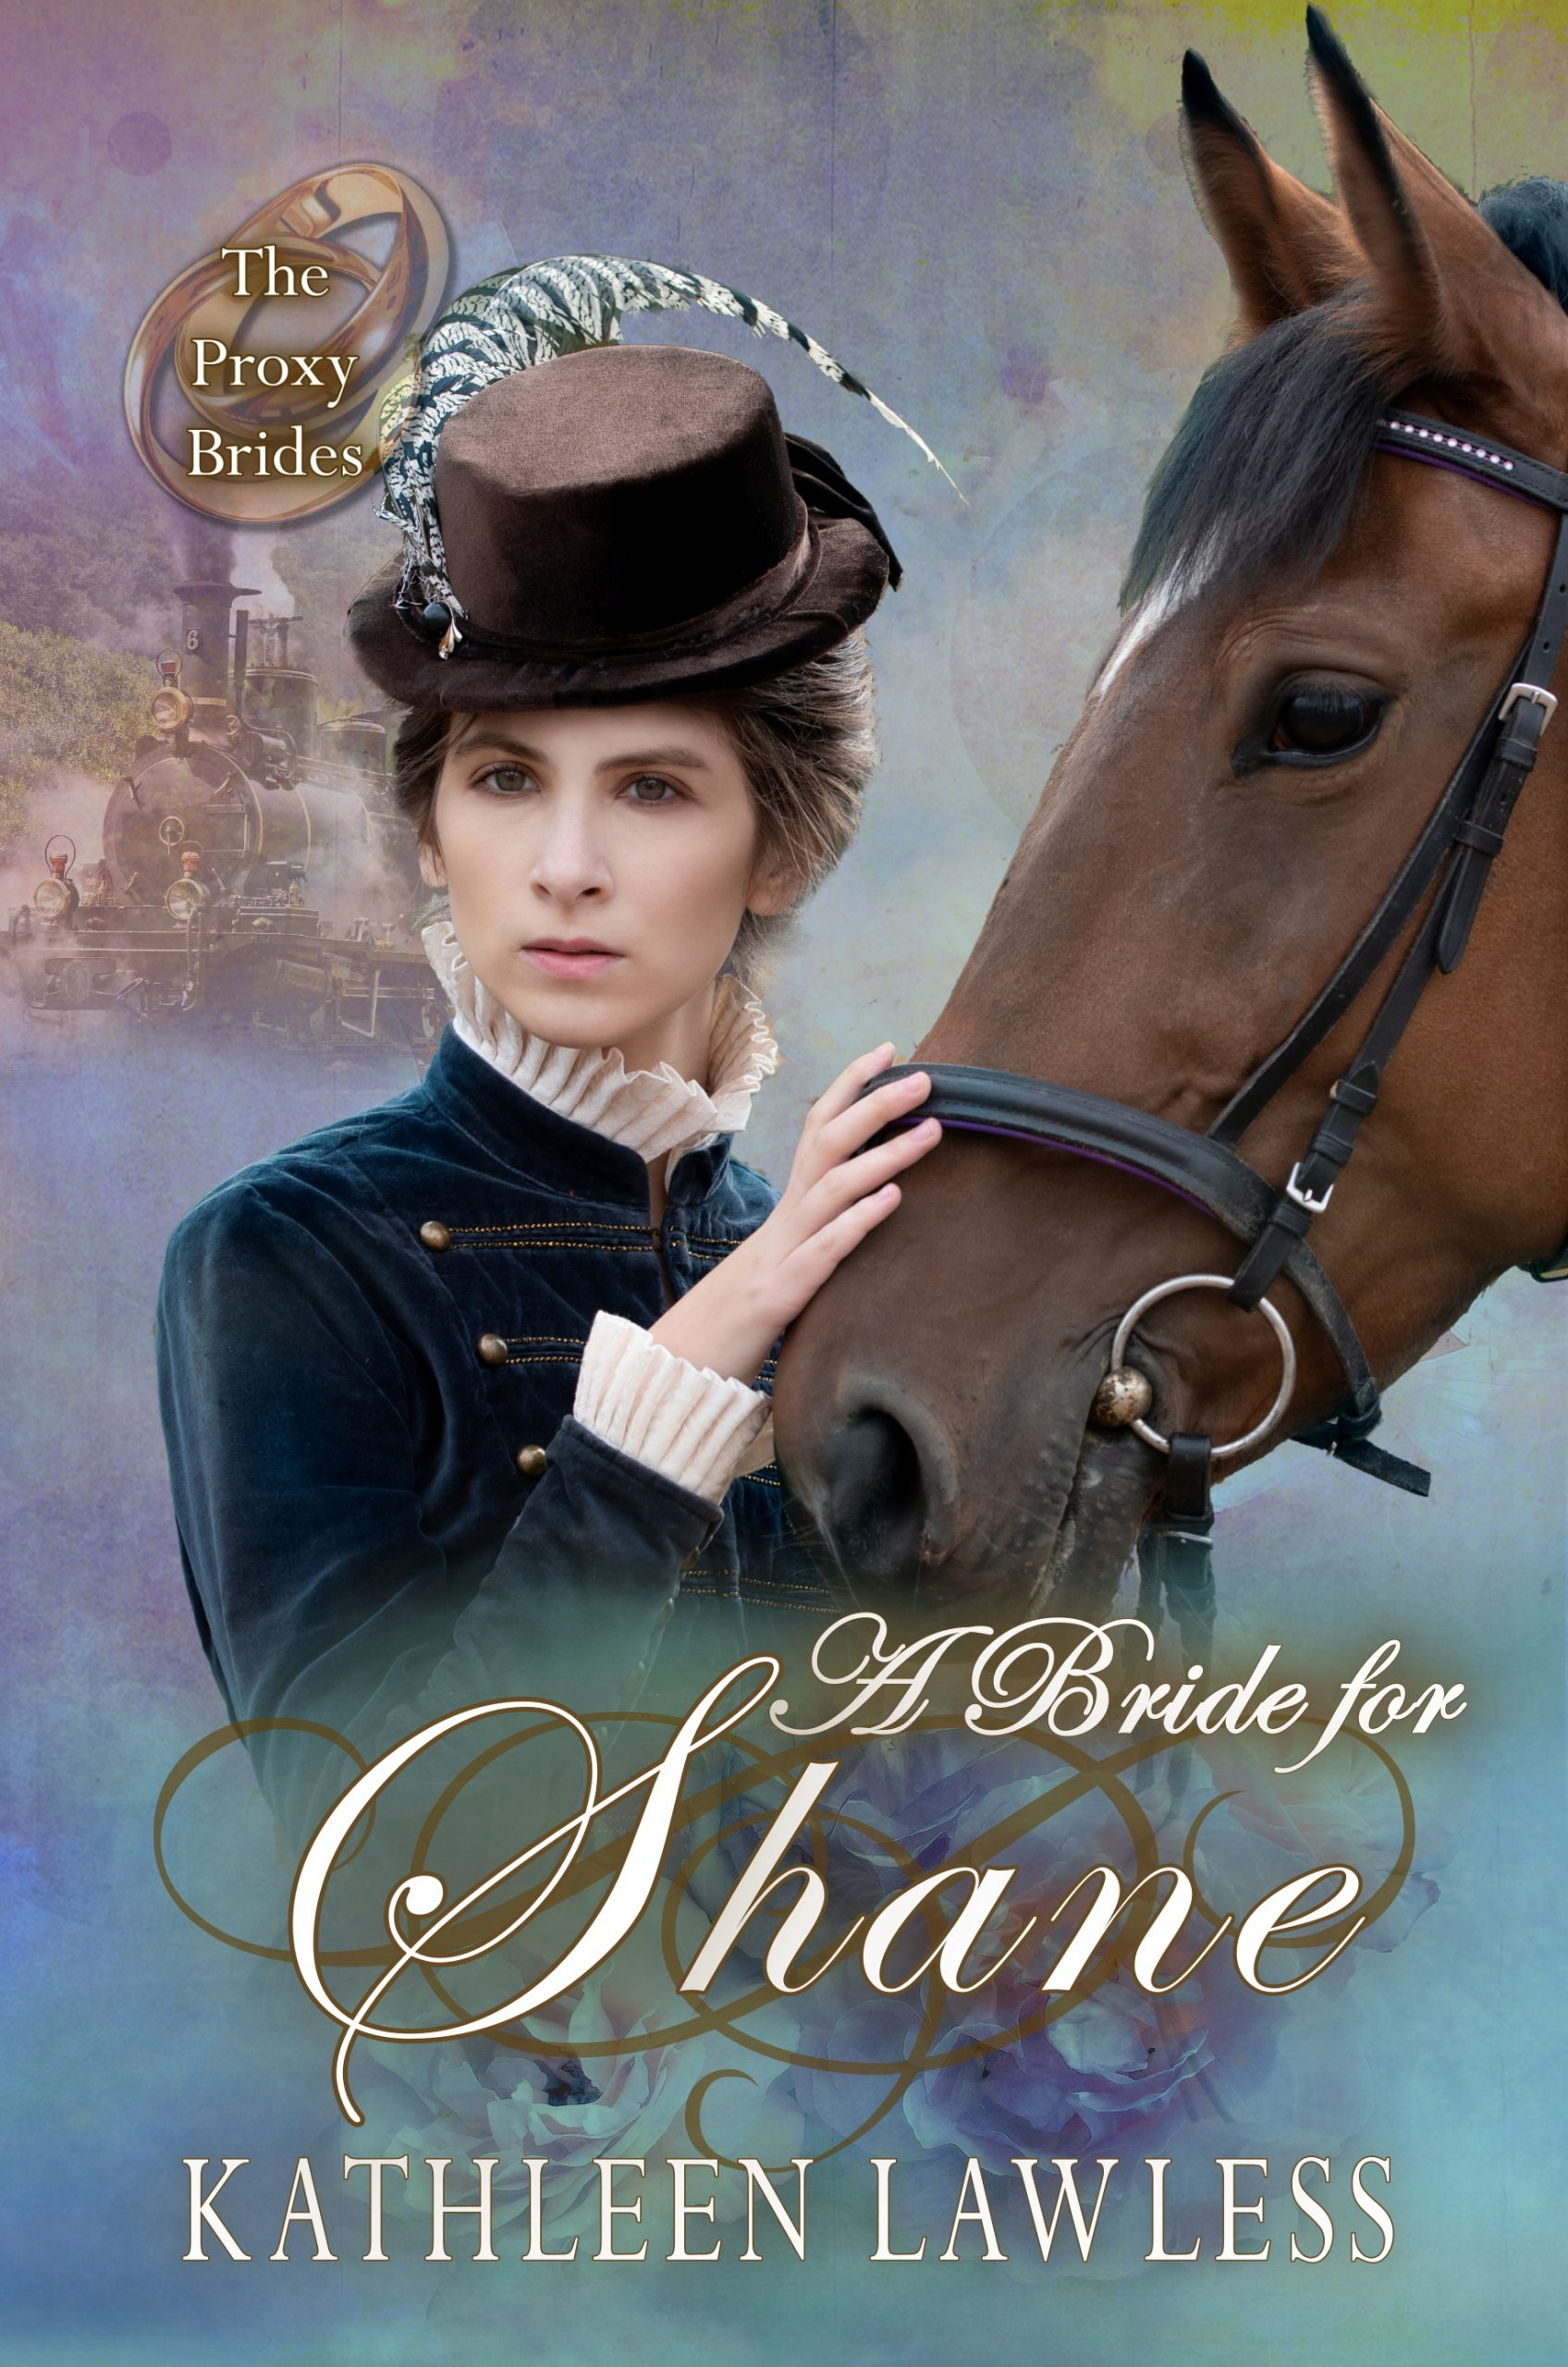 A Bride for Shane by Kathleen Lawless